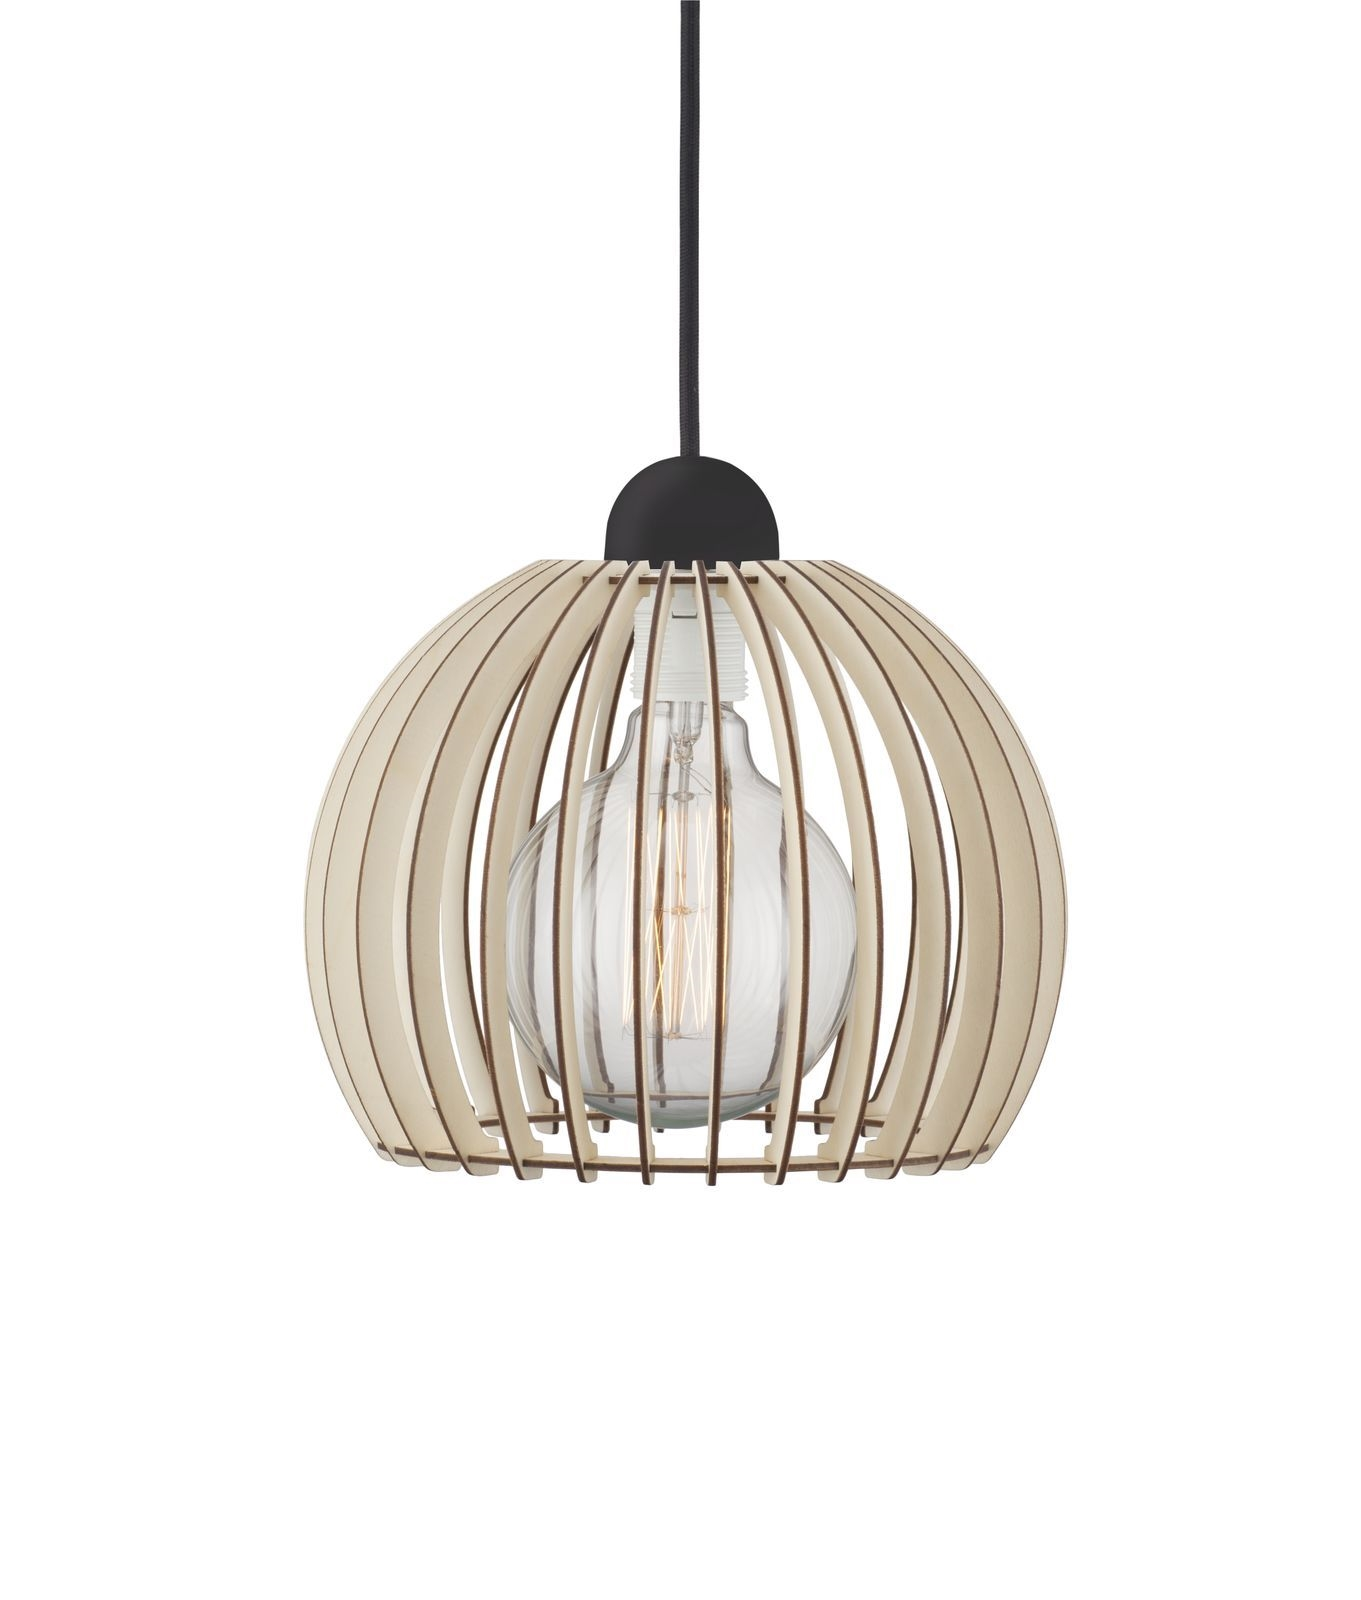 Curved Wooden Slatted Pendant With Black Flex Amp 3 Sizes